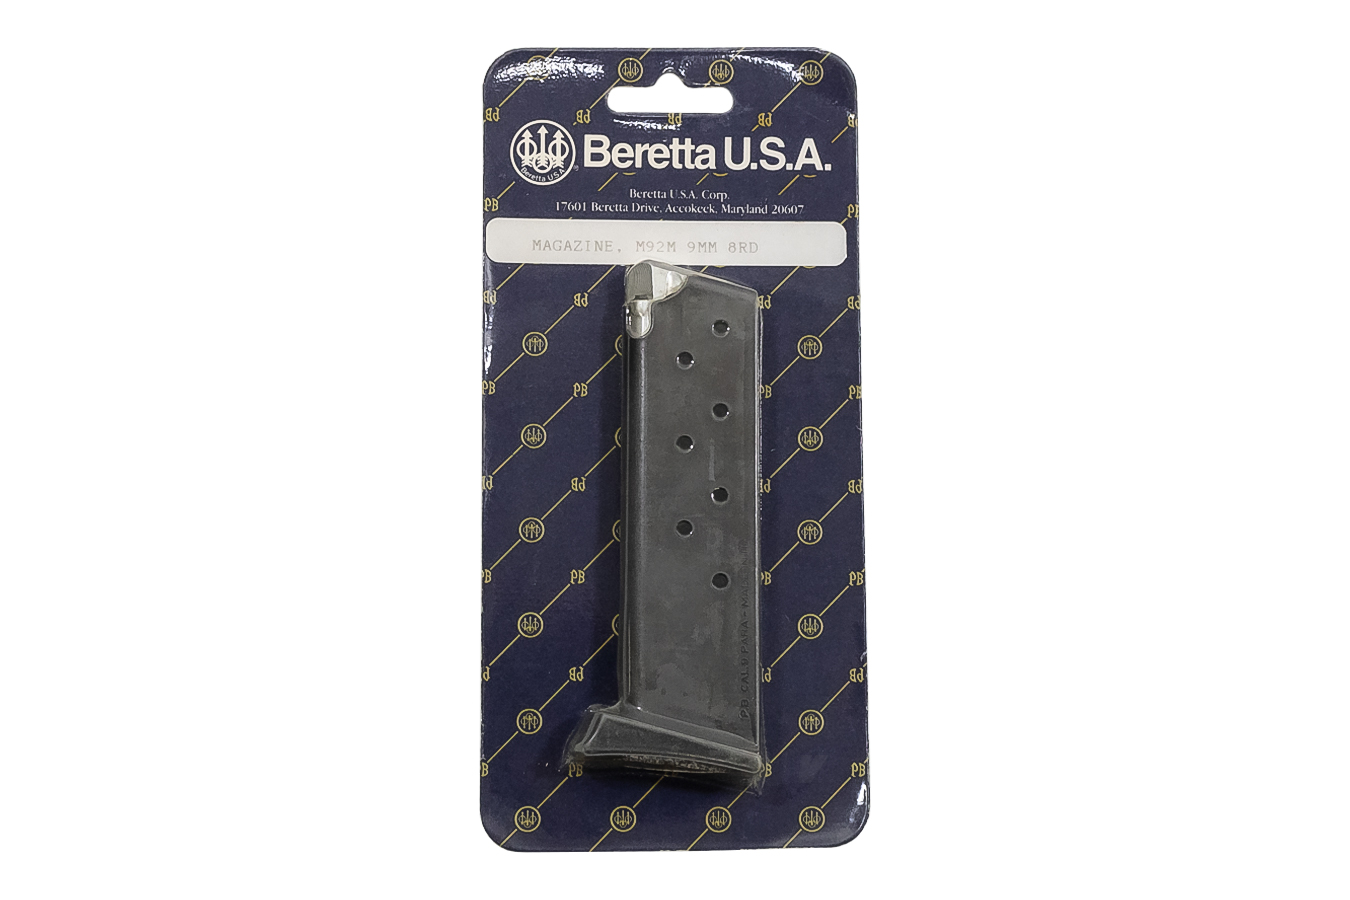 BERETTA M92M 9MM MAGAZINE